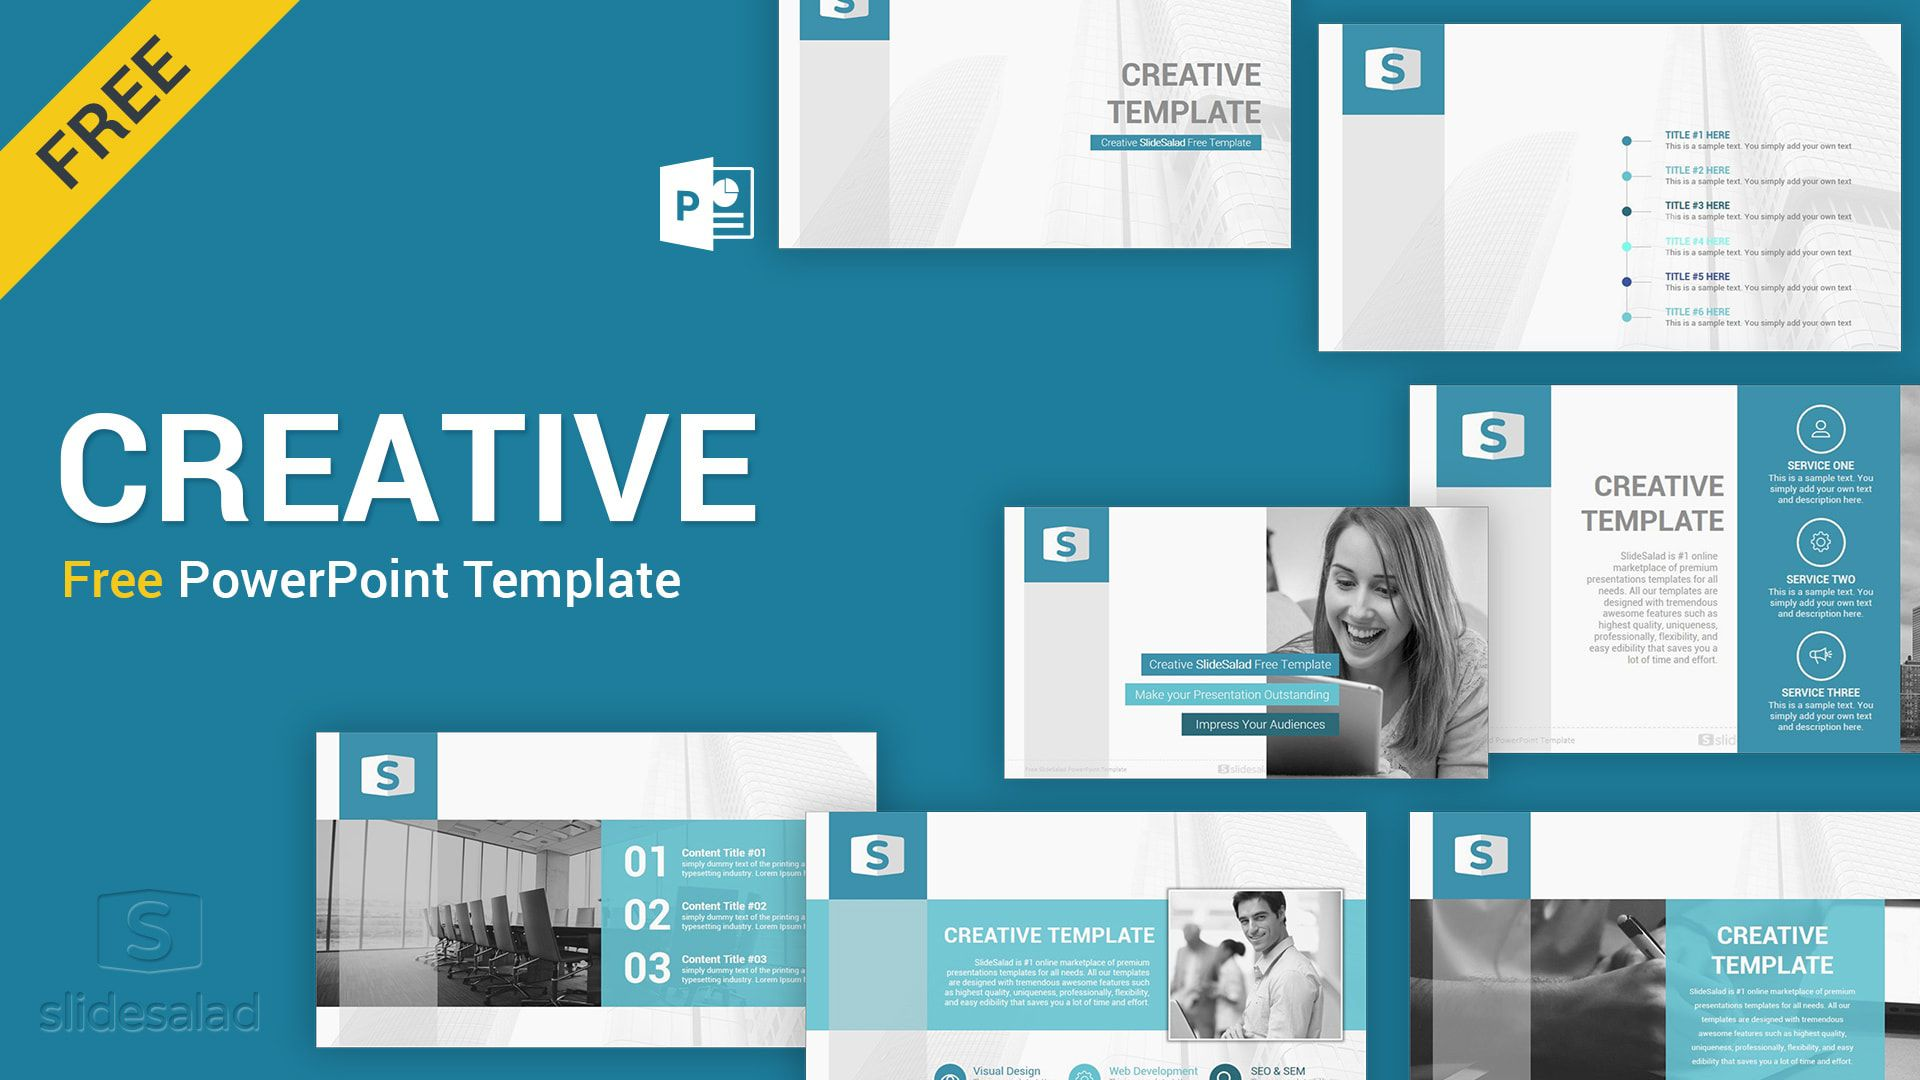 006 Imposing Free Powerpoint Presentation Template Idea  Templates 22 Slide For The Perfect Busines Strategy Download EngineeringFull